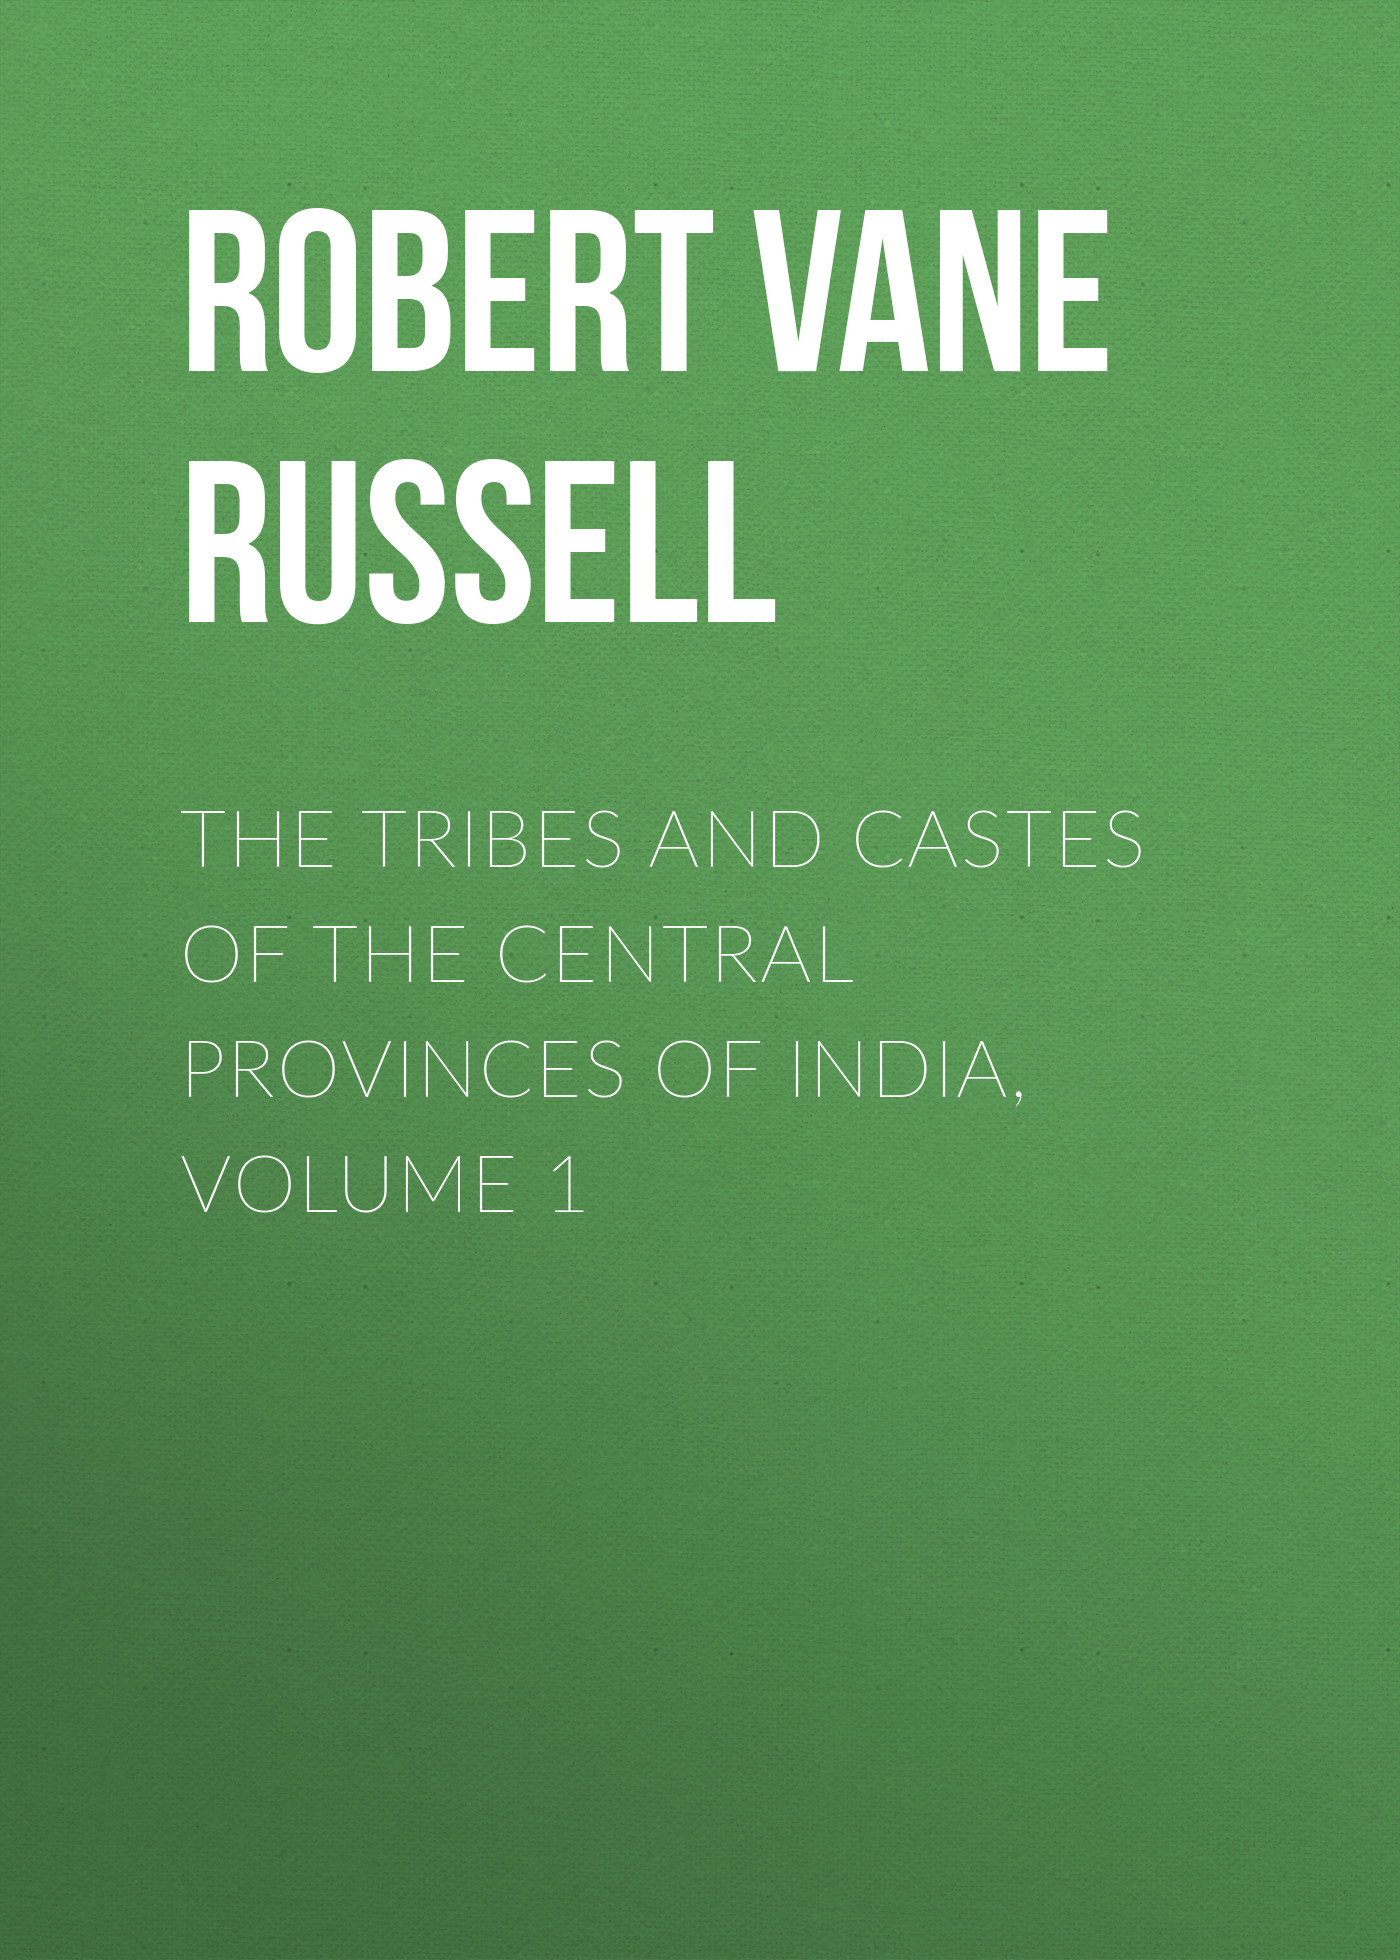 Robert Vane Russell The Tribes and Castes of the Central Provinces of India, Volume 1